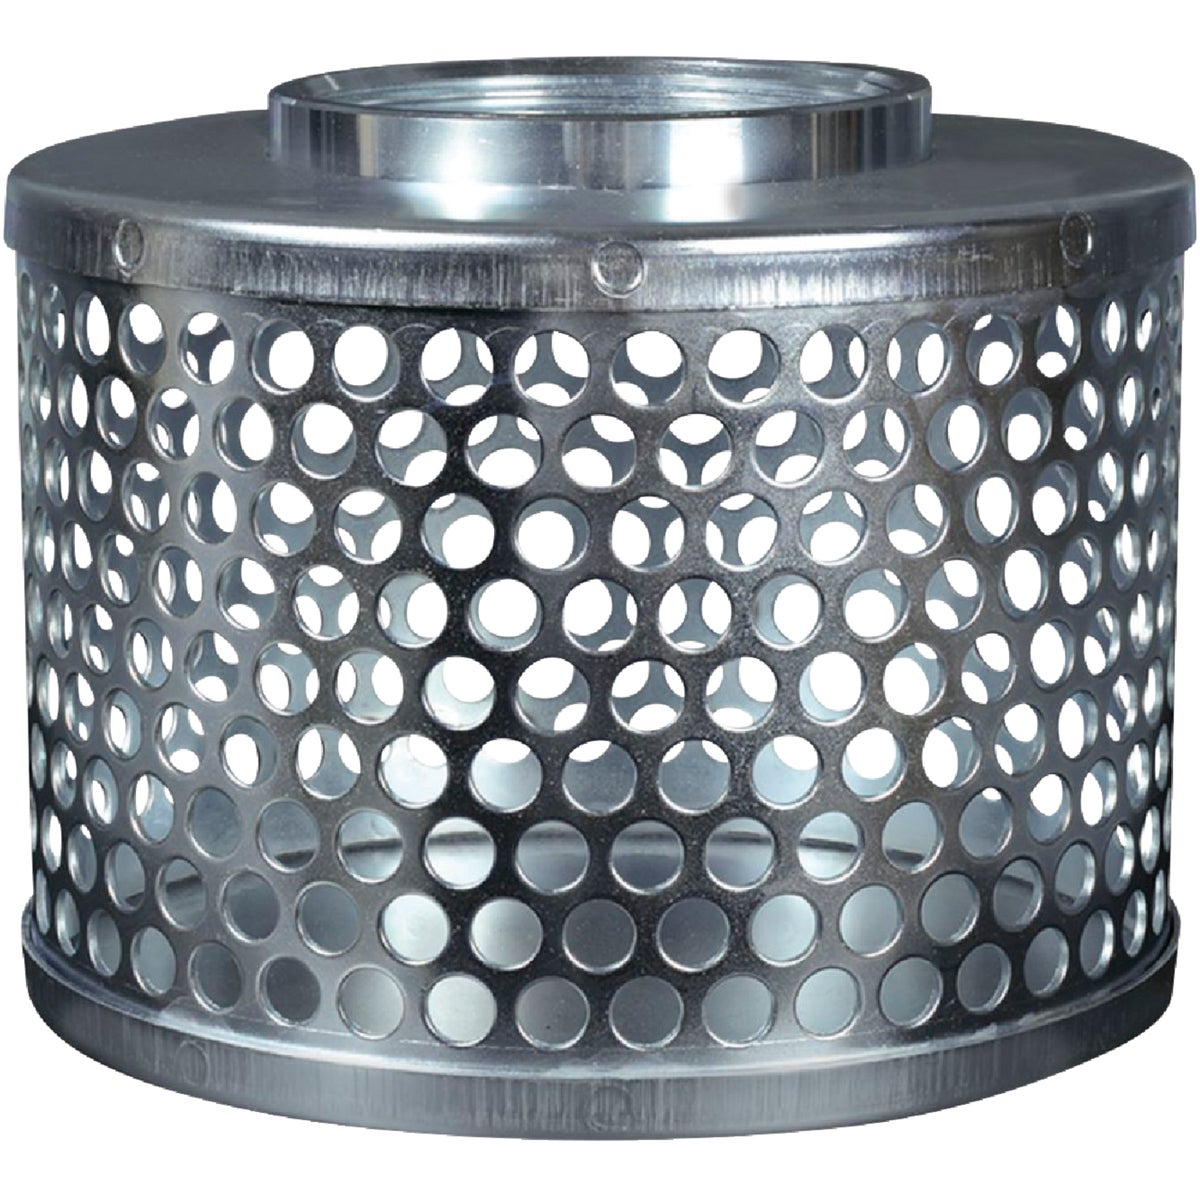 STEEL HOSE STRAINER - 70000504 by Apache Hose Belting